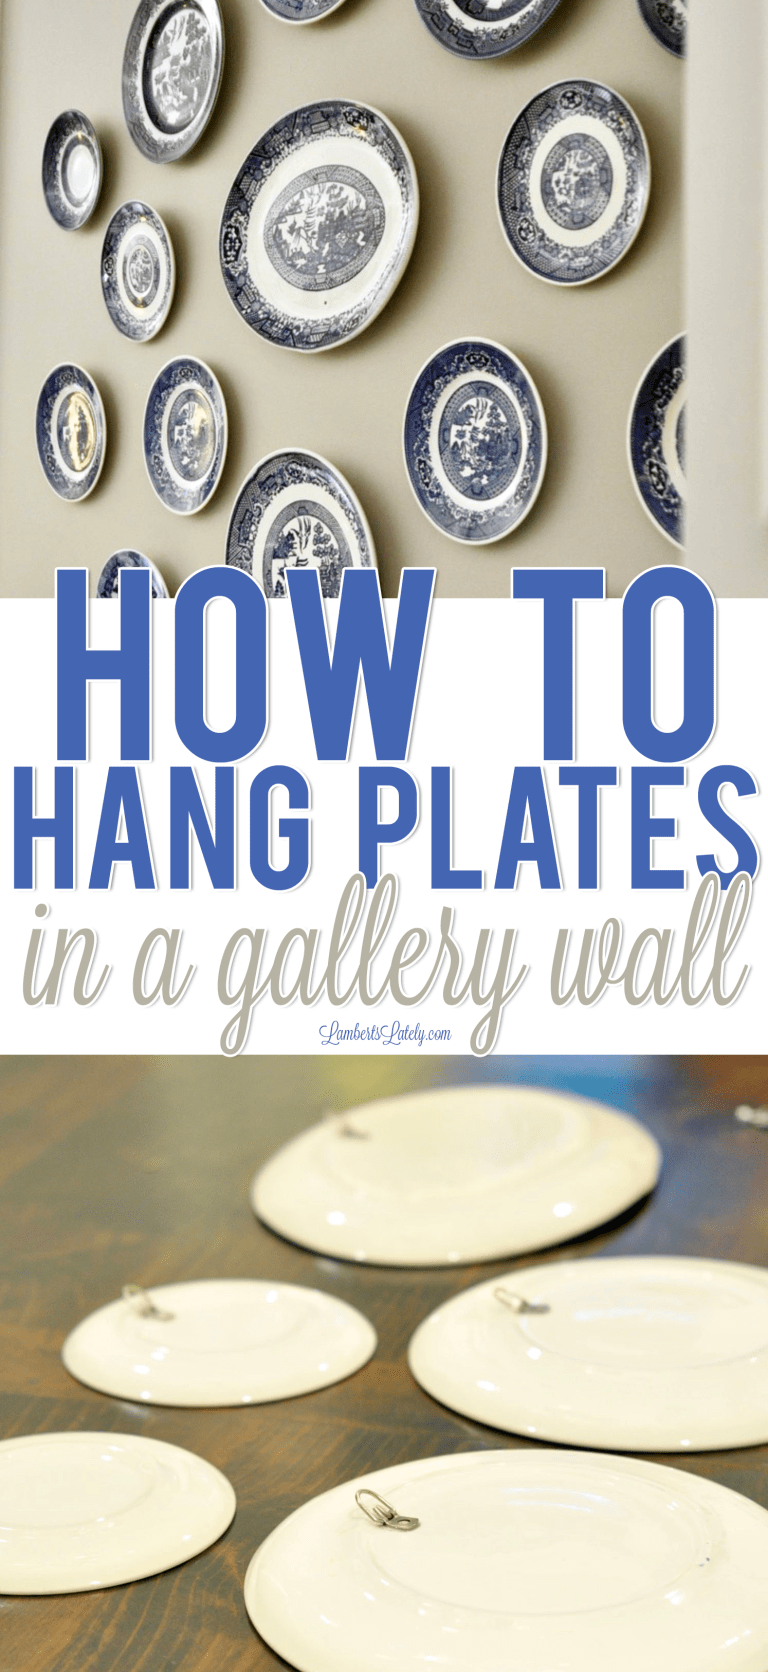 How To Hang Plates In A Gallery Wall In 2020 Plate Wall Decor Plates On Wall Dining Room Gallery Wall